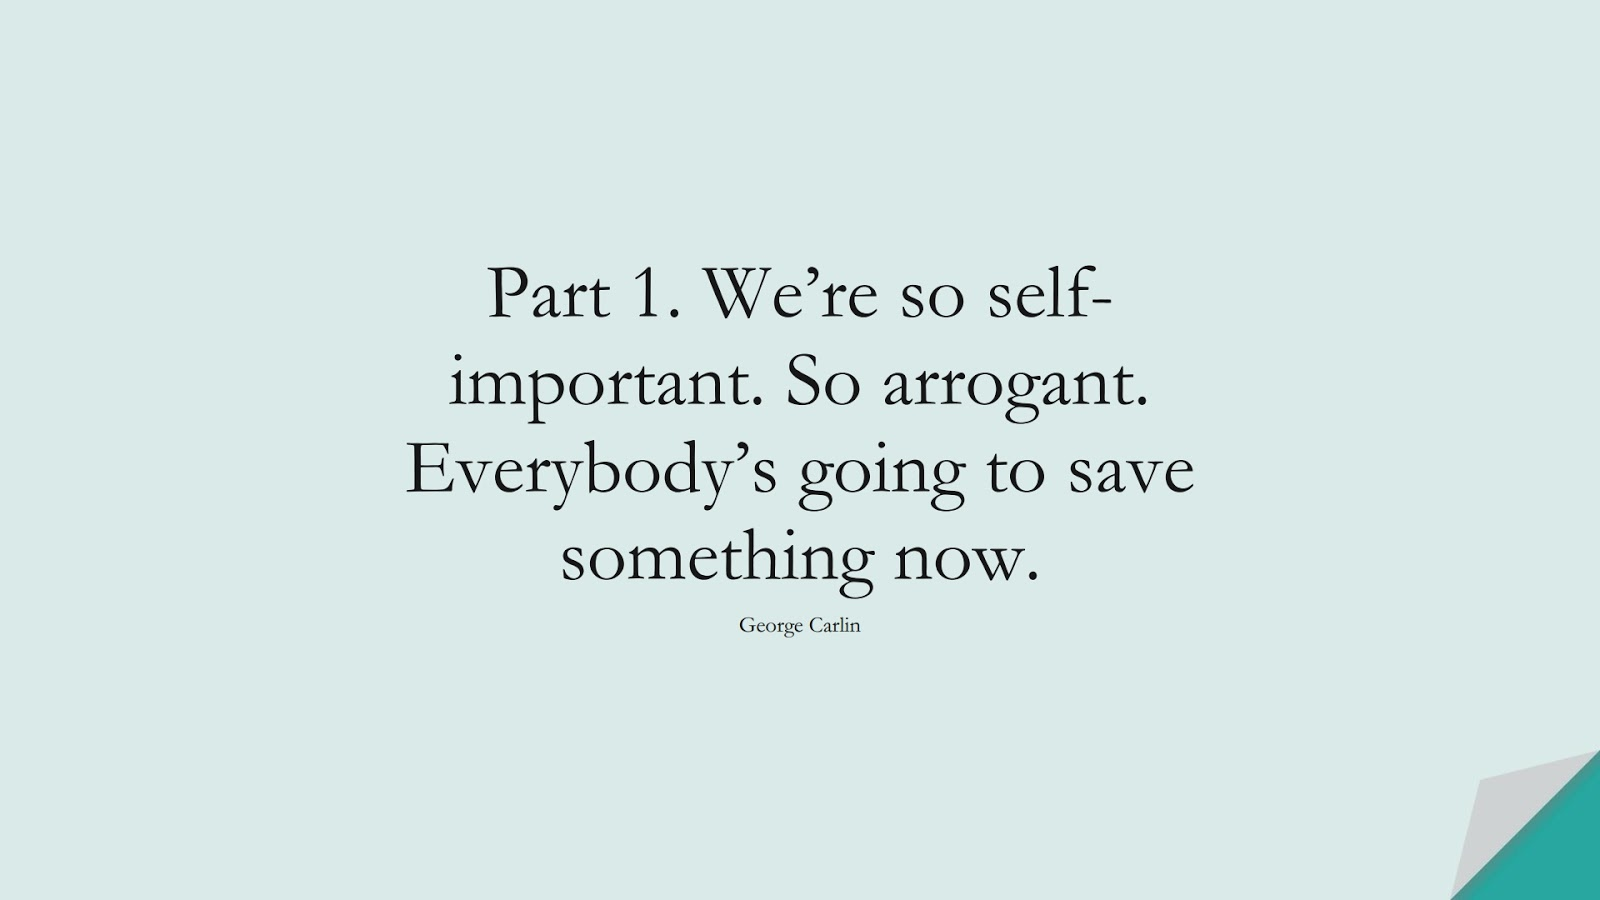 Part 1. We're so self-important. So arrogant. Everybody's going to save something now. (George Carlin);  #HumanityQuotes